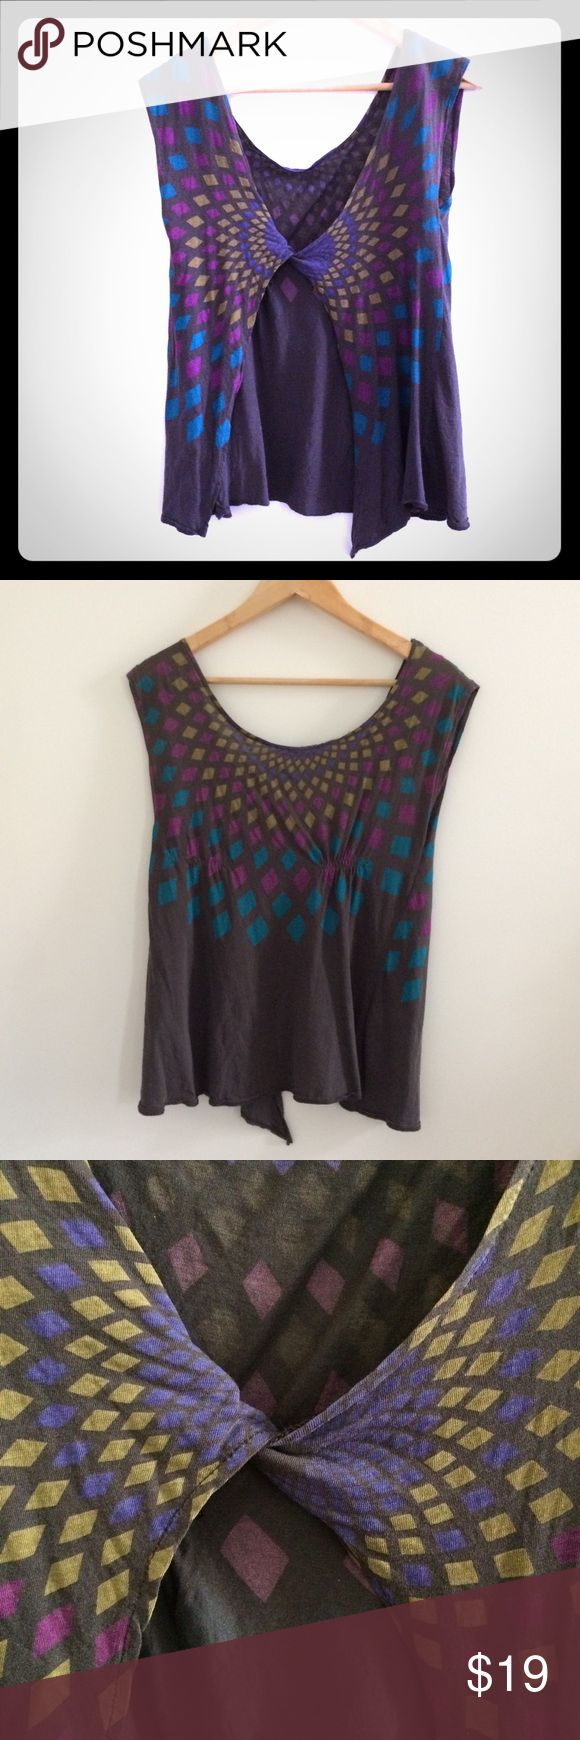 French Connection open back top geometric print Cute worn-in soft tee with an open back. Size S. Normal wear, with a tiny, almost invisible hole as pictured. French Connection Tops Tees - Short Sleeve